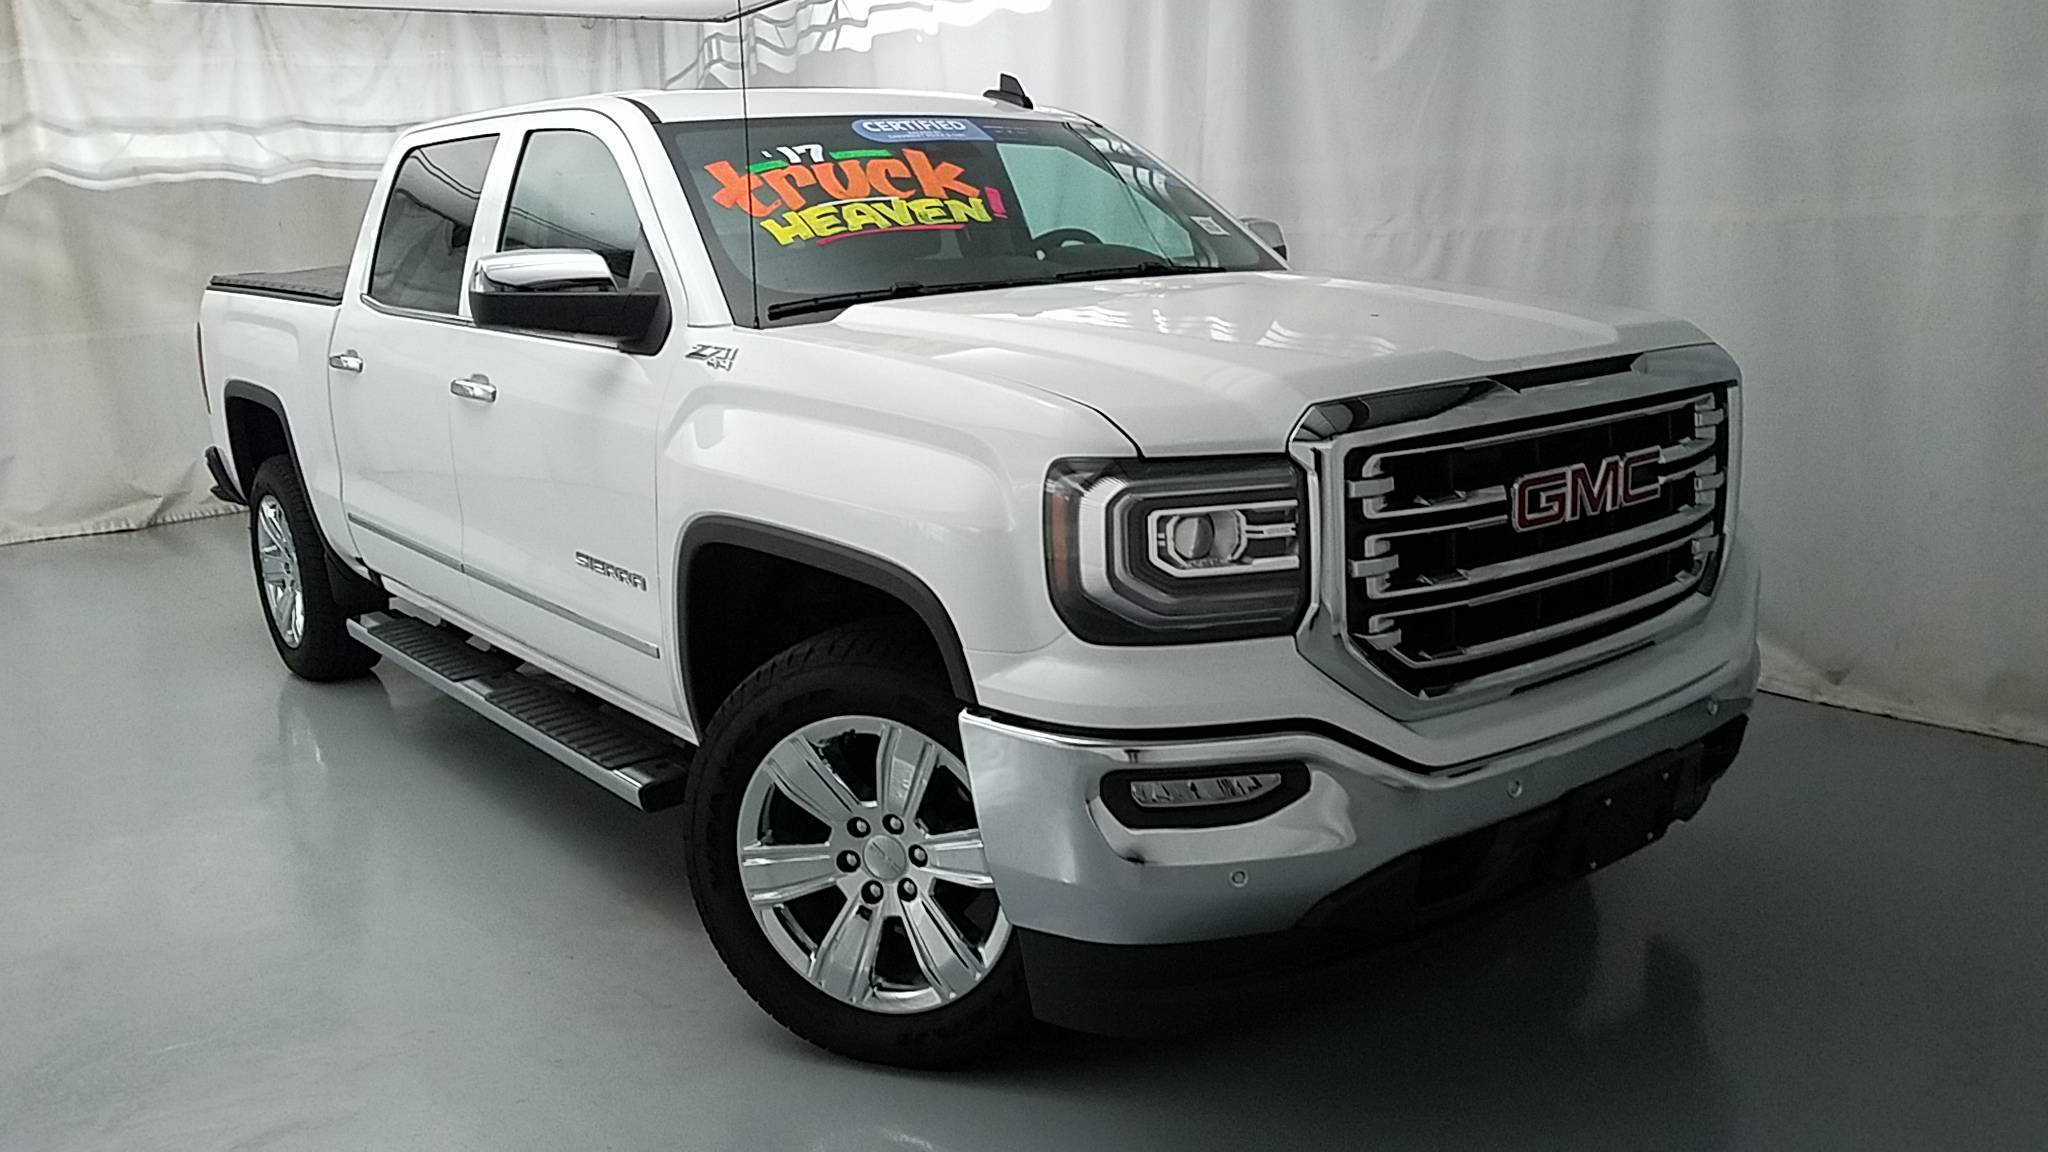 2017 gmc sierra 1500 vehicle photo in hammond la